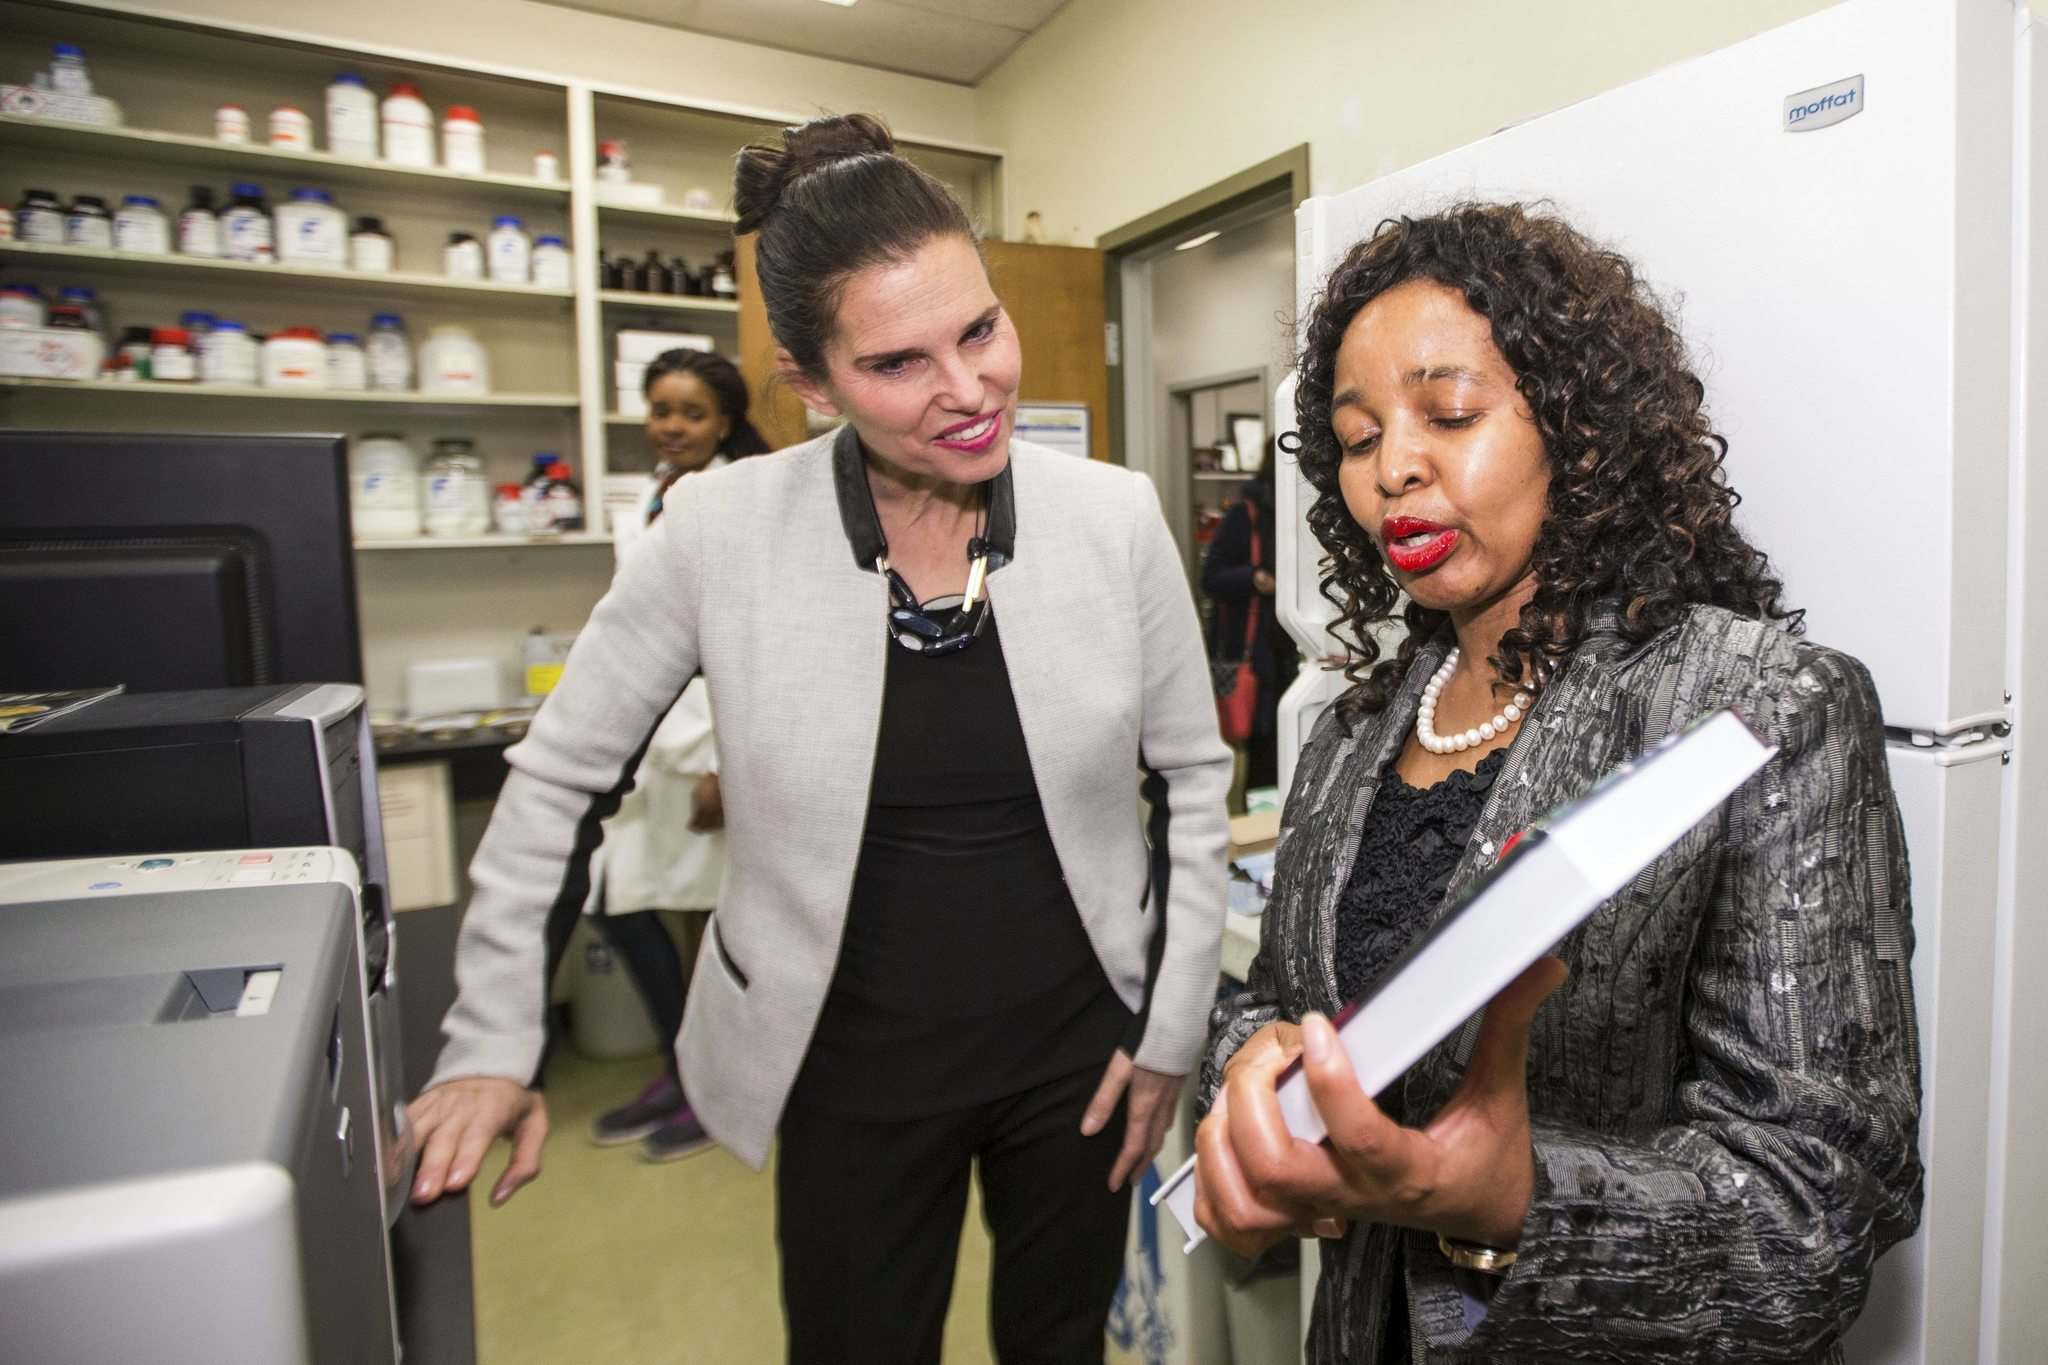 MIKAELA MACKENZIE / WINNIPEG FREE PRESS</p><p>Kirsty Duncan, Minister of Science and Sport, gets a tour of Trust Beta's grains lab after announcing national investments in the Canada Research Chairs Program at the University of Manitoba.</p>